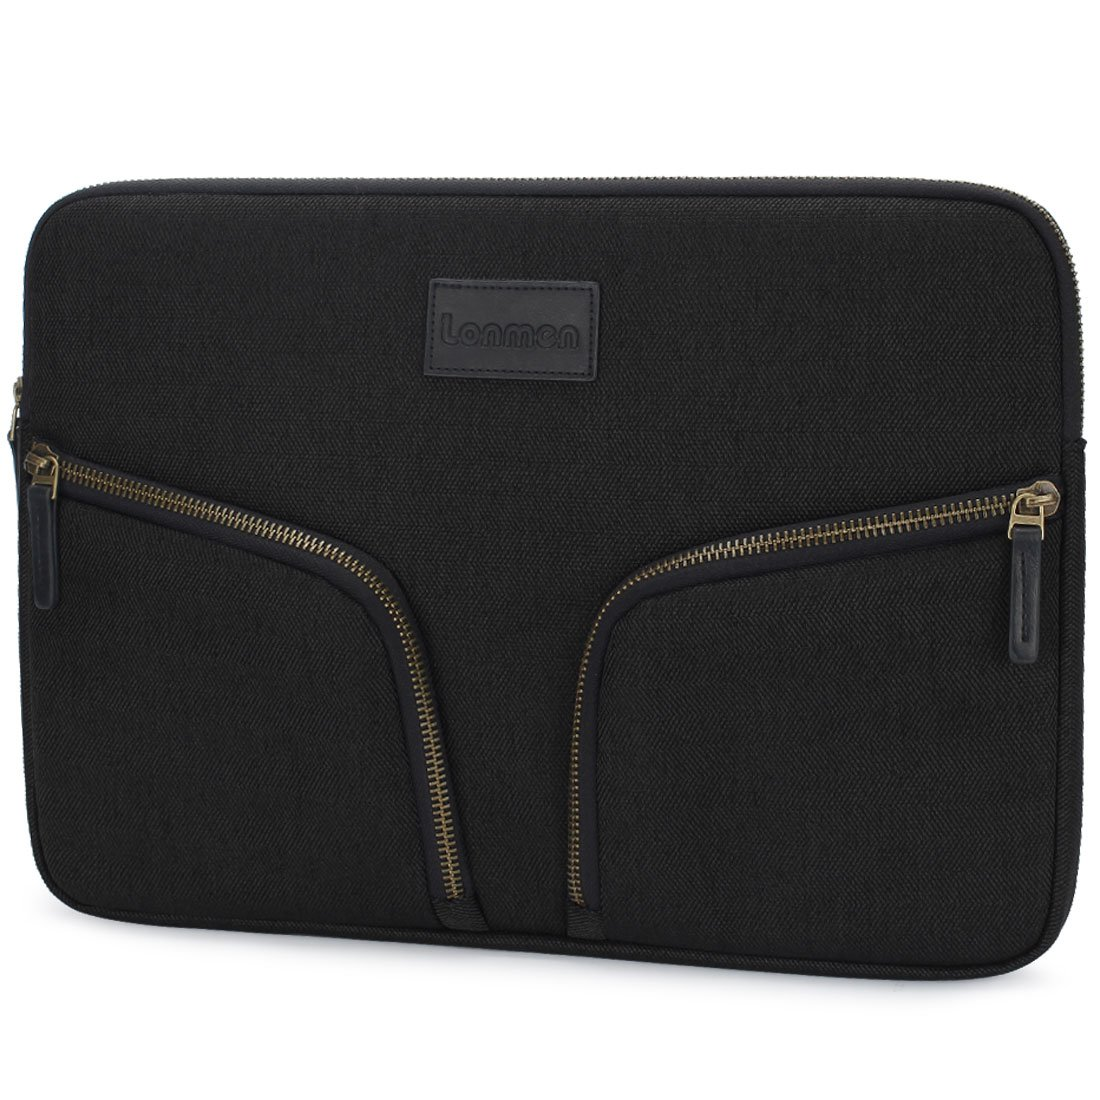 LONMEN 15.6 inch Laptop Sleeve Protective Waterproof Carrying Case Handbag Cover for Most 15-15.6 Lenovo Asus Dell Acer Toshiba HP Envy Notebook Bag with Accessory Pocket,Black